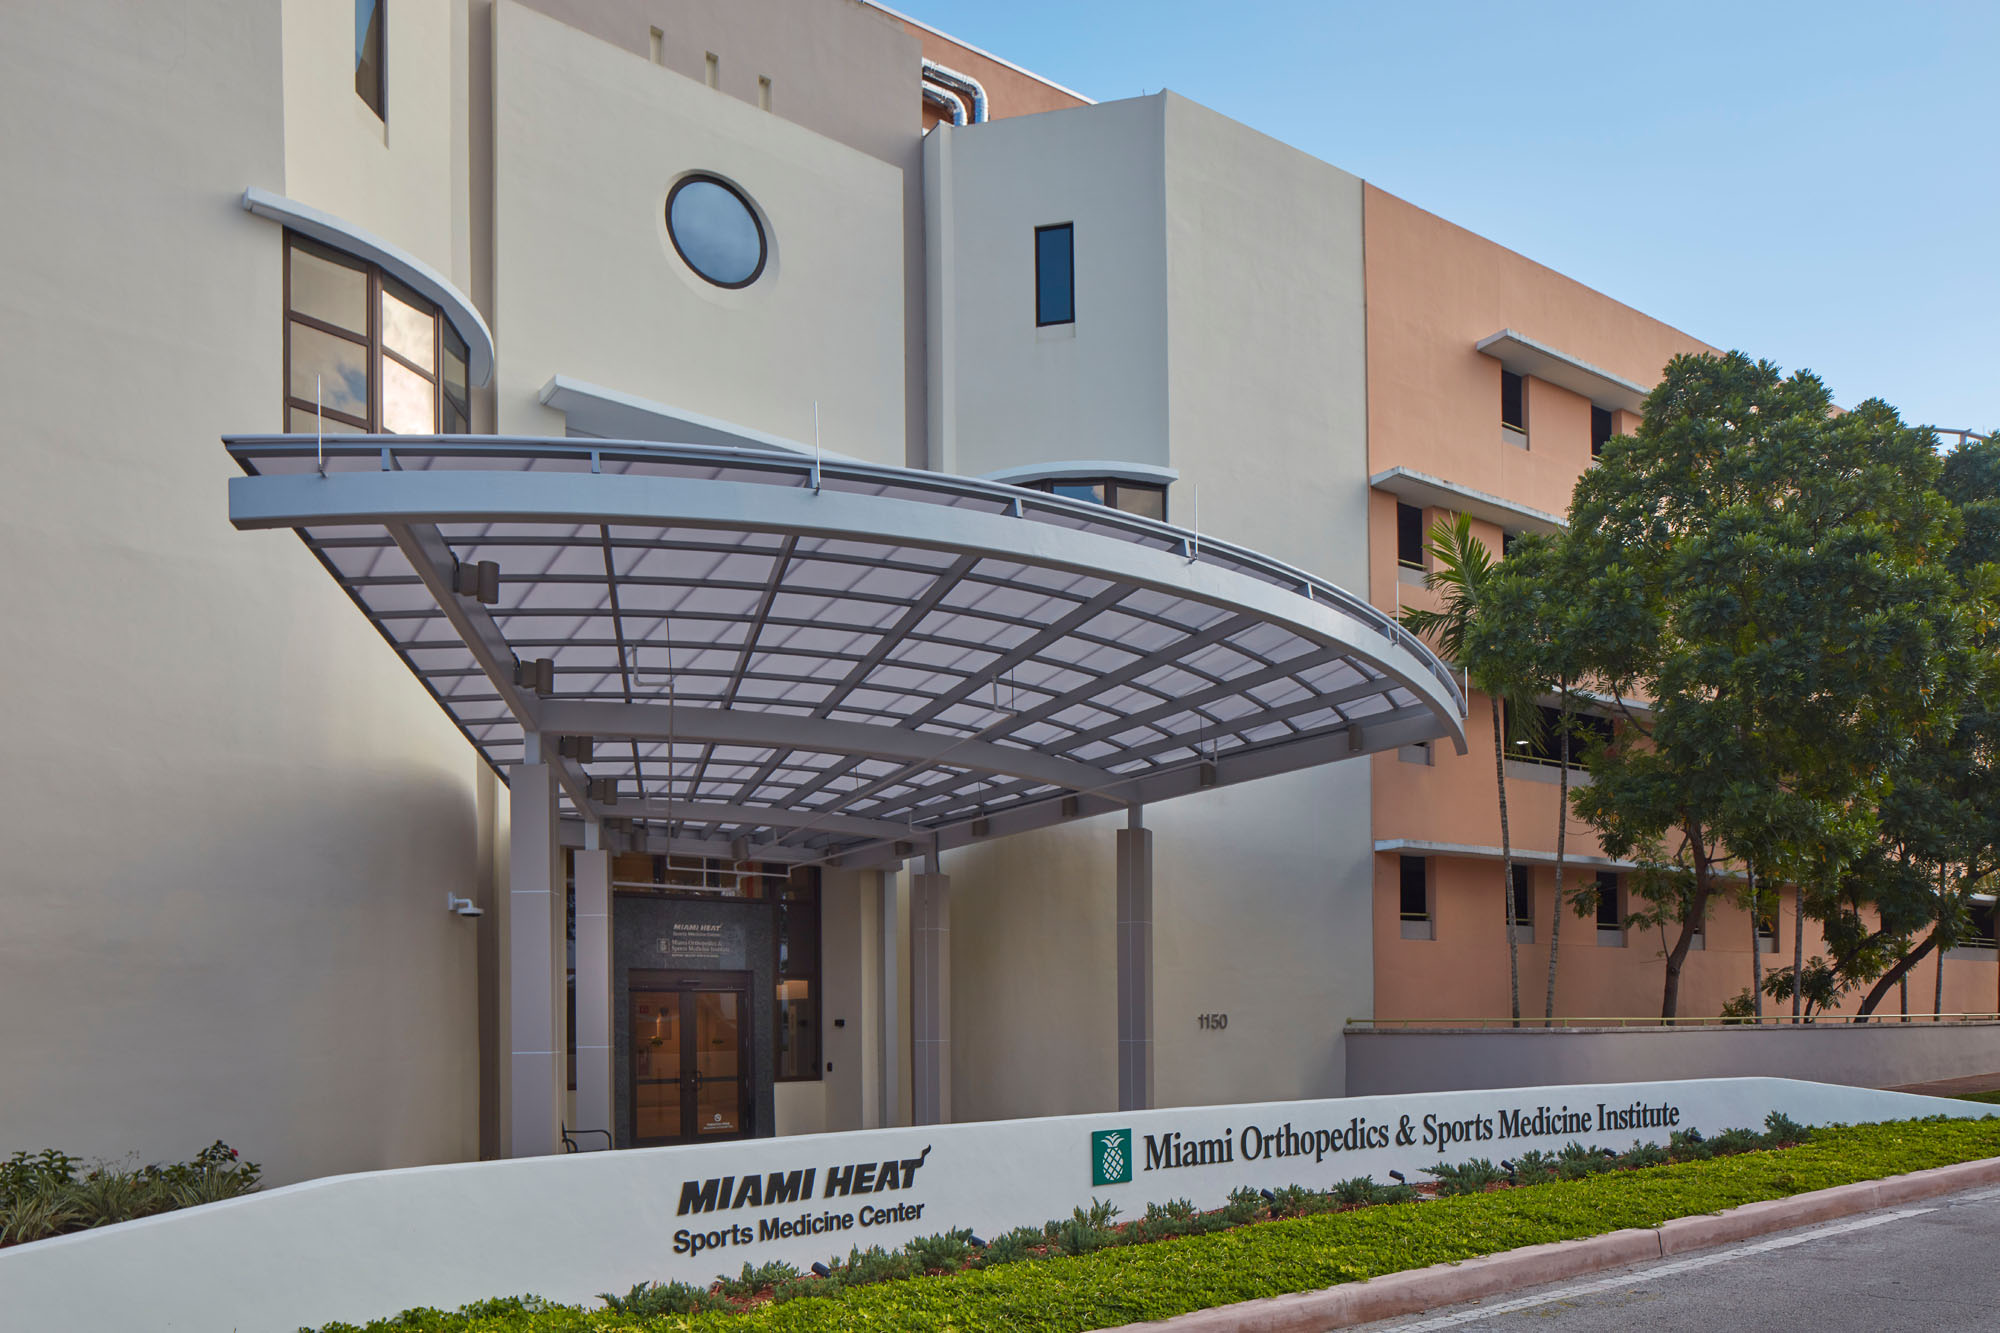 NELSON Worldwide renovates Miami HEAT Sports Medicine Center at Baptist Health